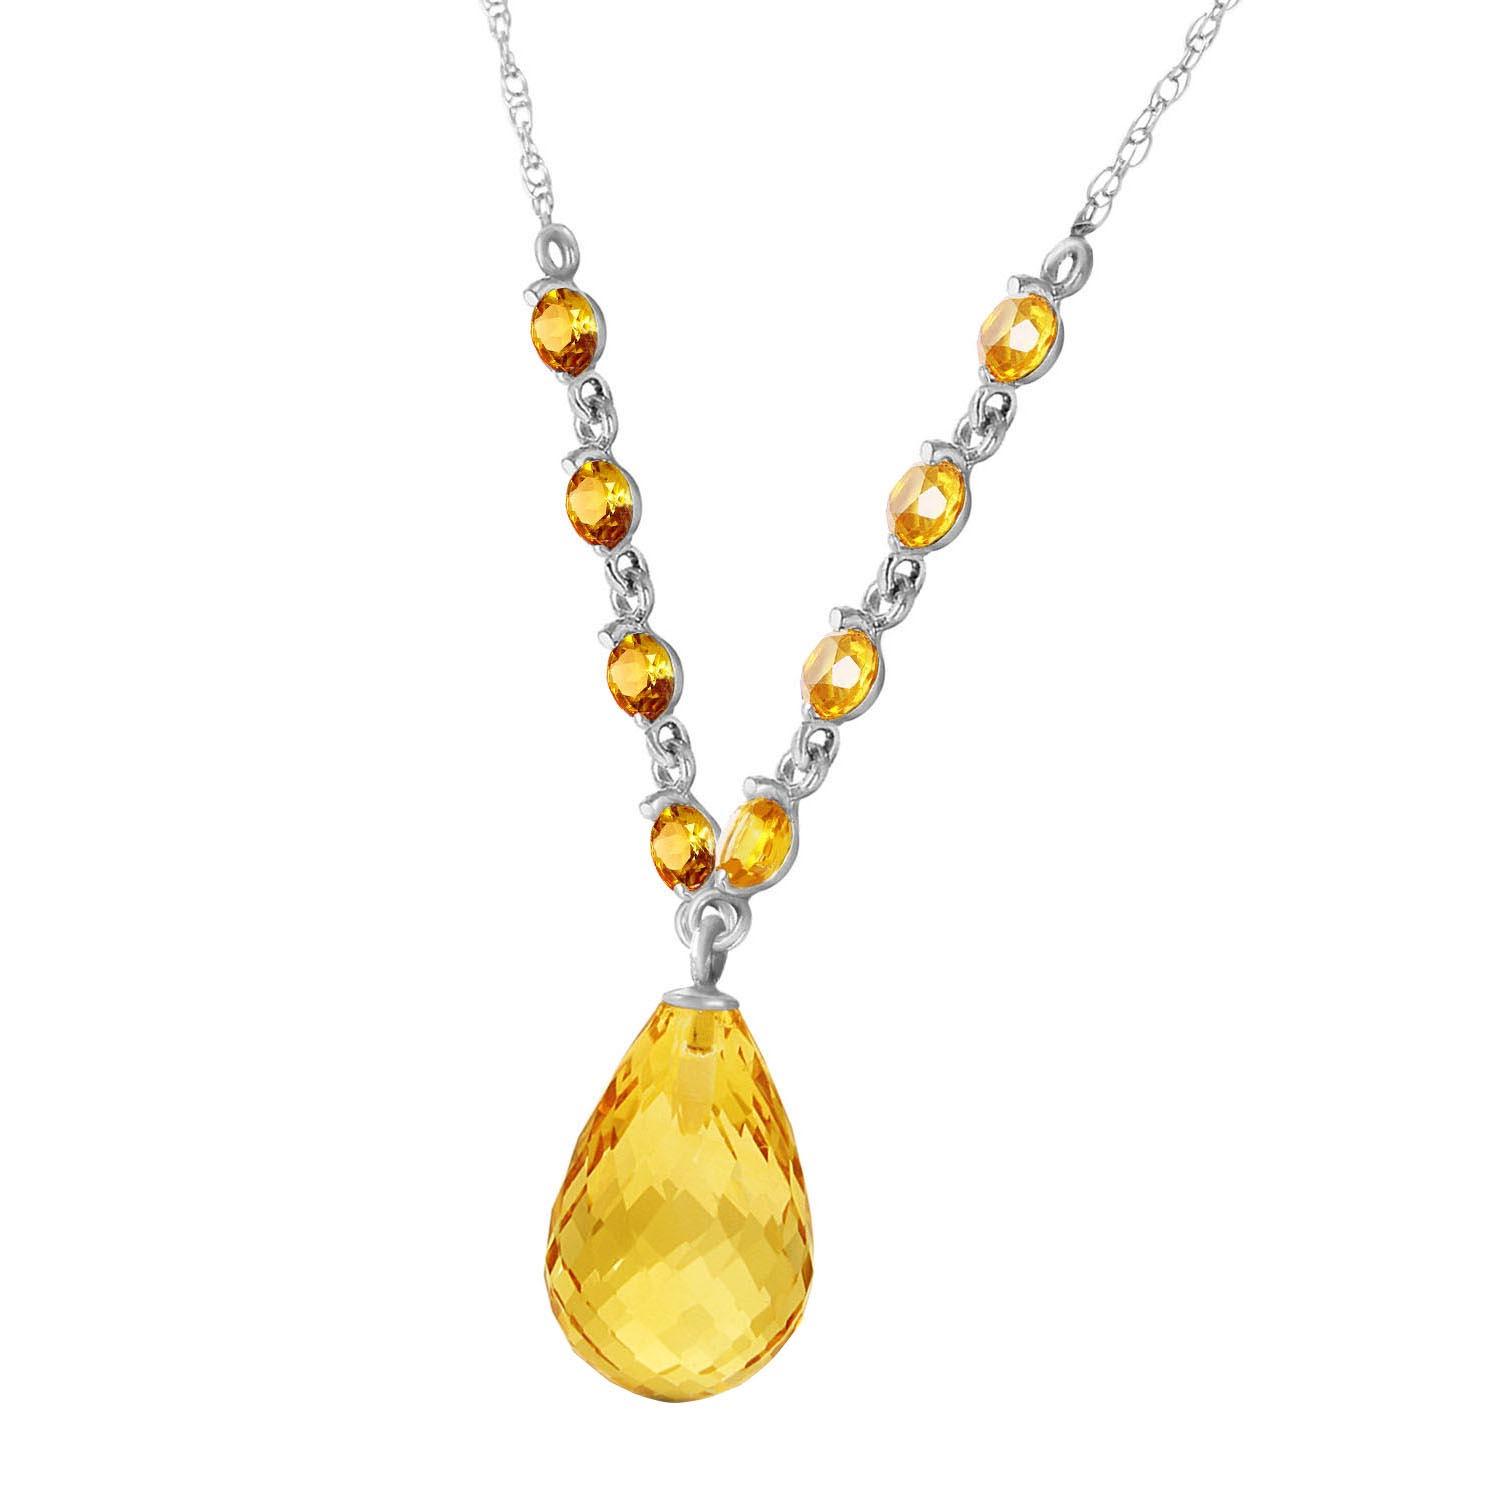 Citrine Briolette Pendant Necklace 11.5ctw in 9ct White Gold